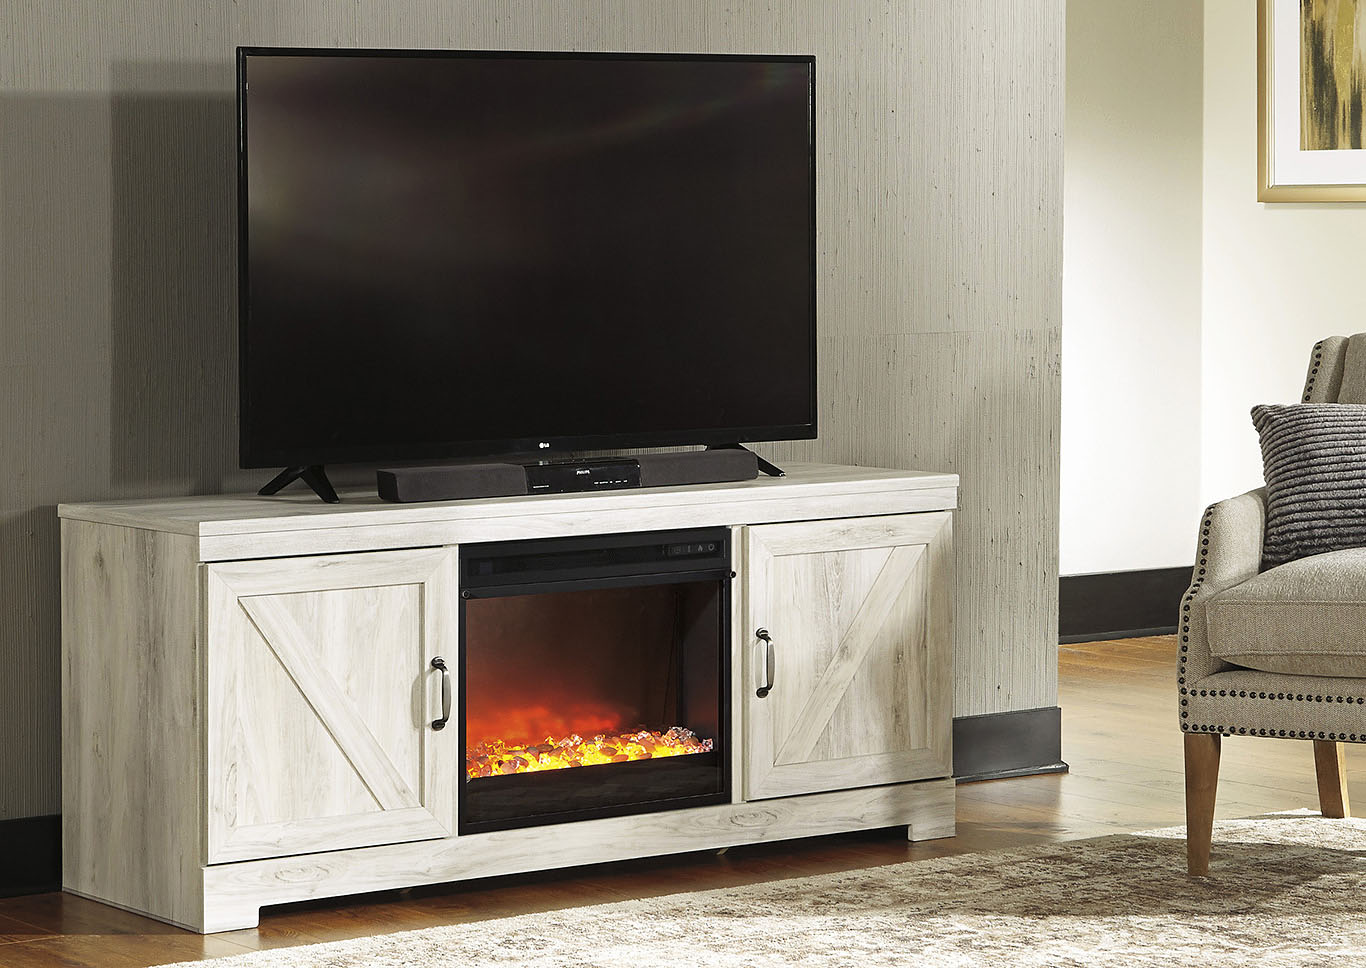 Bellaby Whitewash LG TV Stand w/Black Glass/Stone Fireplace Insert,Signature Design By Ashley